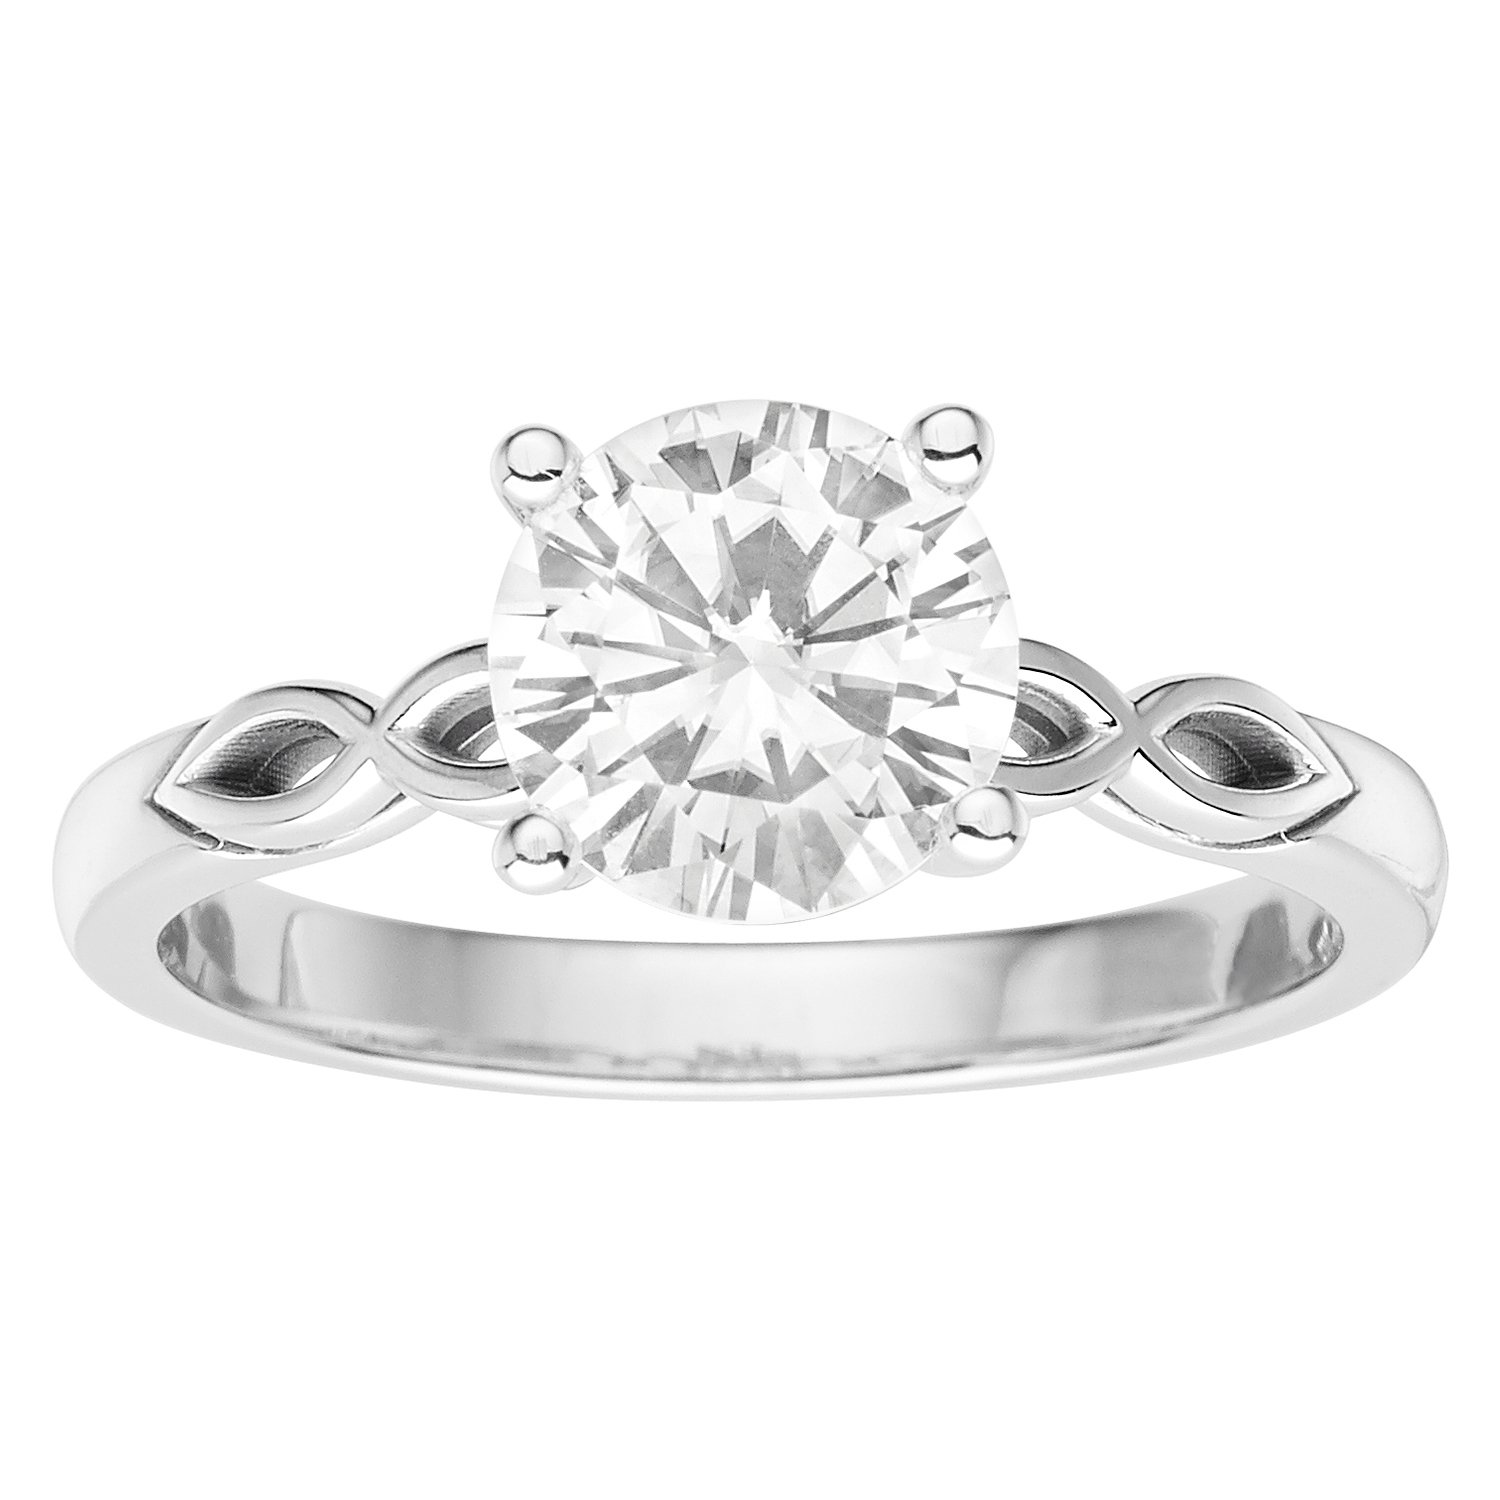 Forever Brilliant Round Cut 7.5mm Moissanite Engagement Ring-size 9,1.50ct DEW By Charles & Colvard